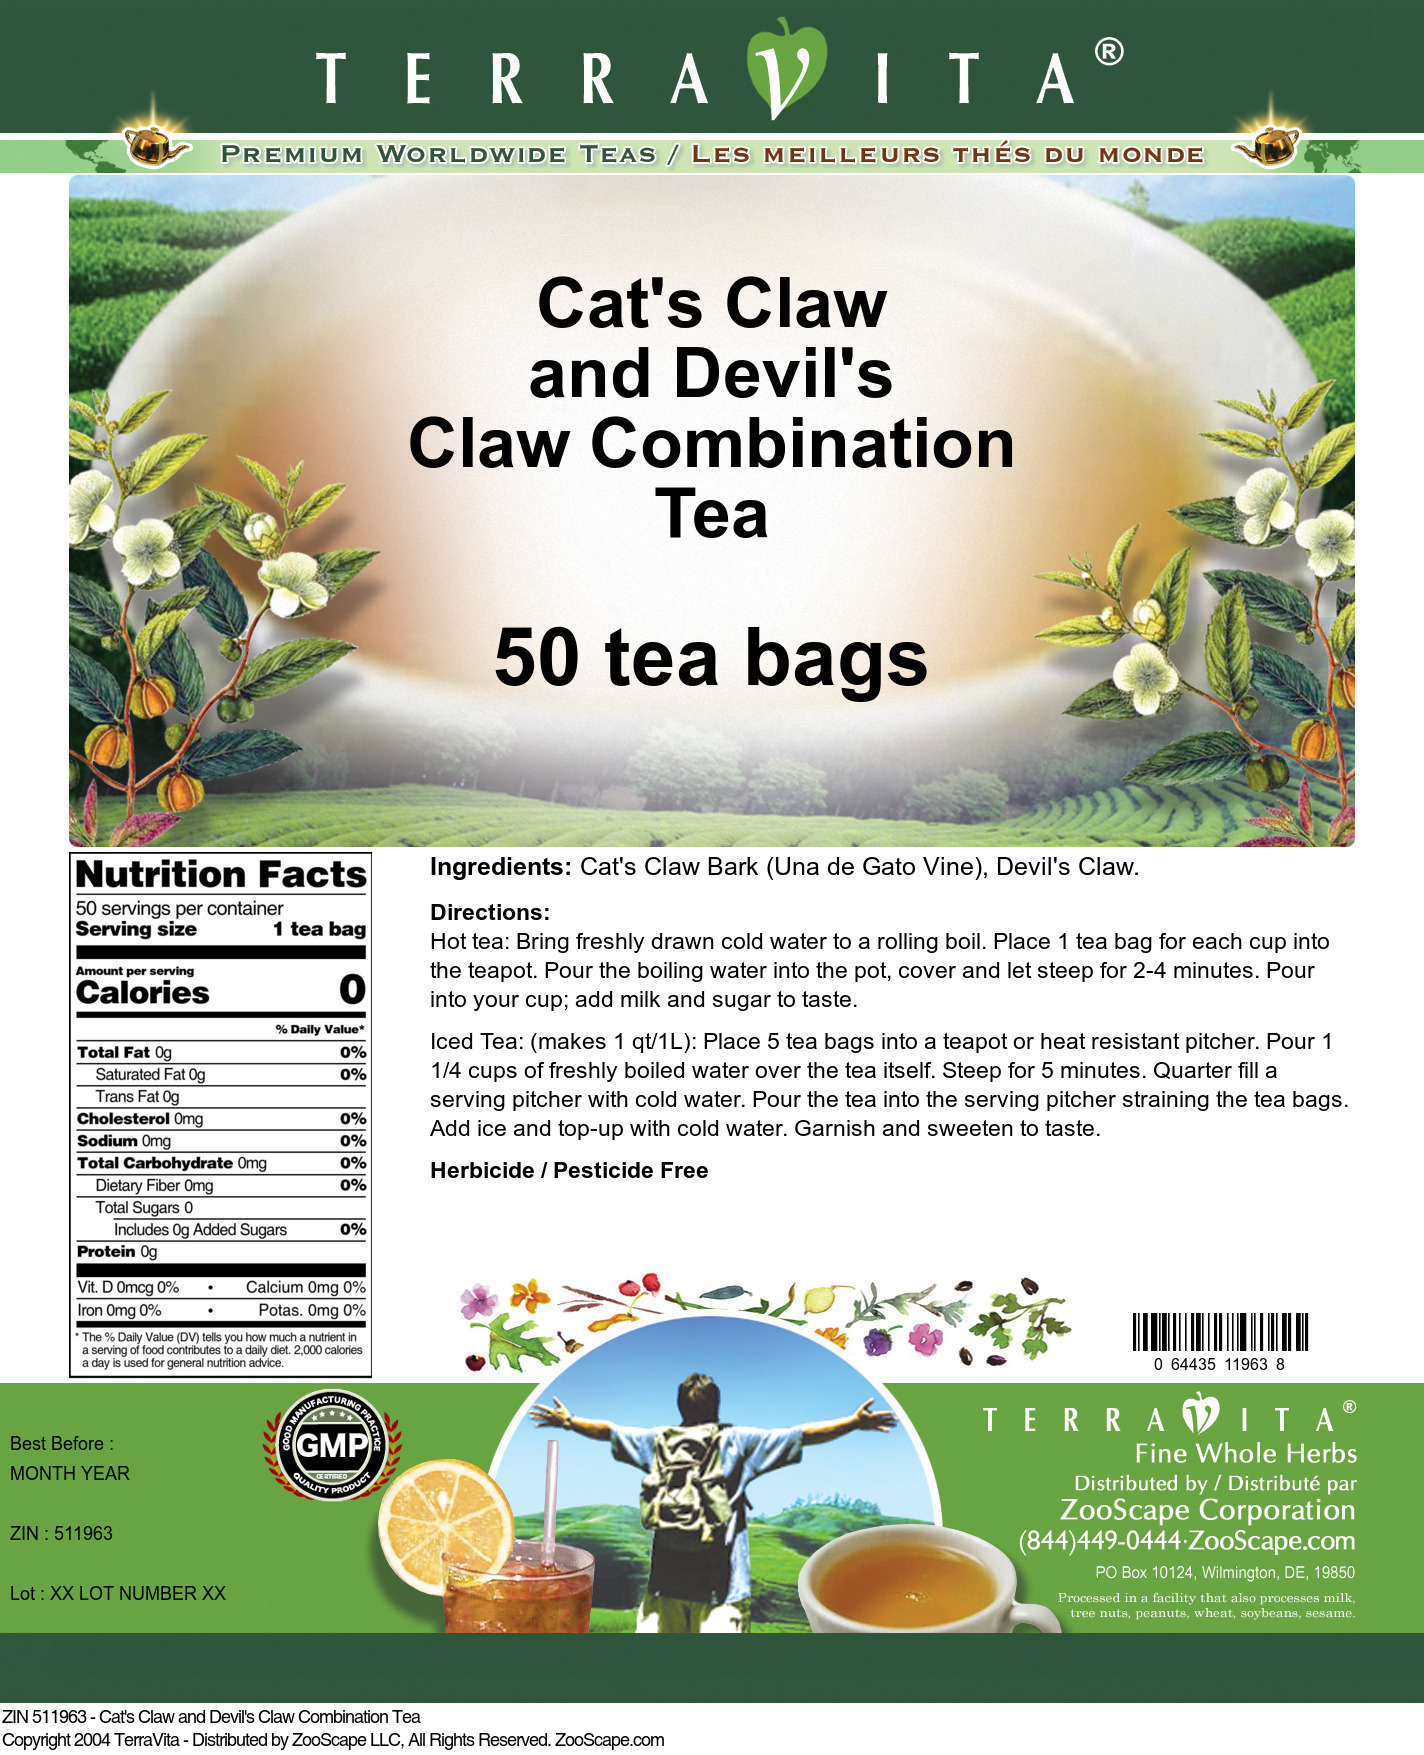 Cat's Claw and Devil's Claw Combination Tea